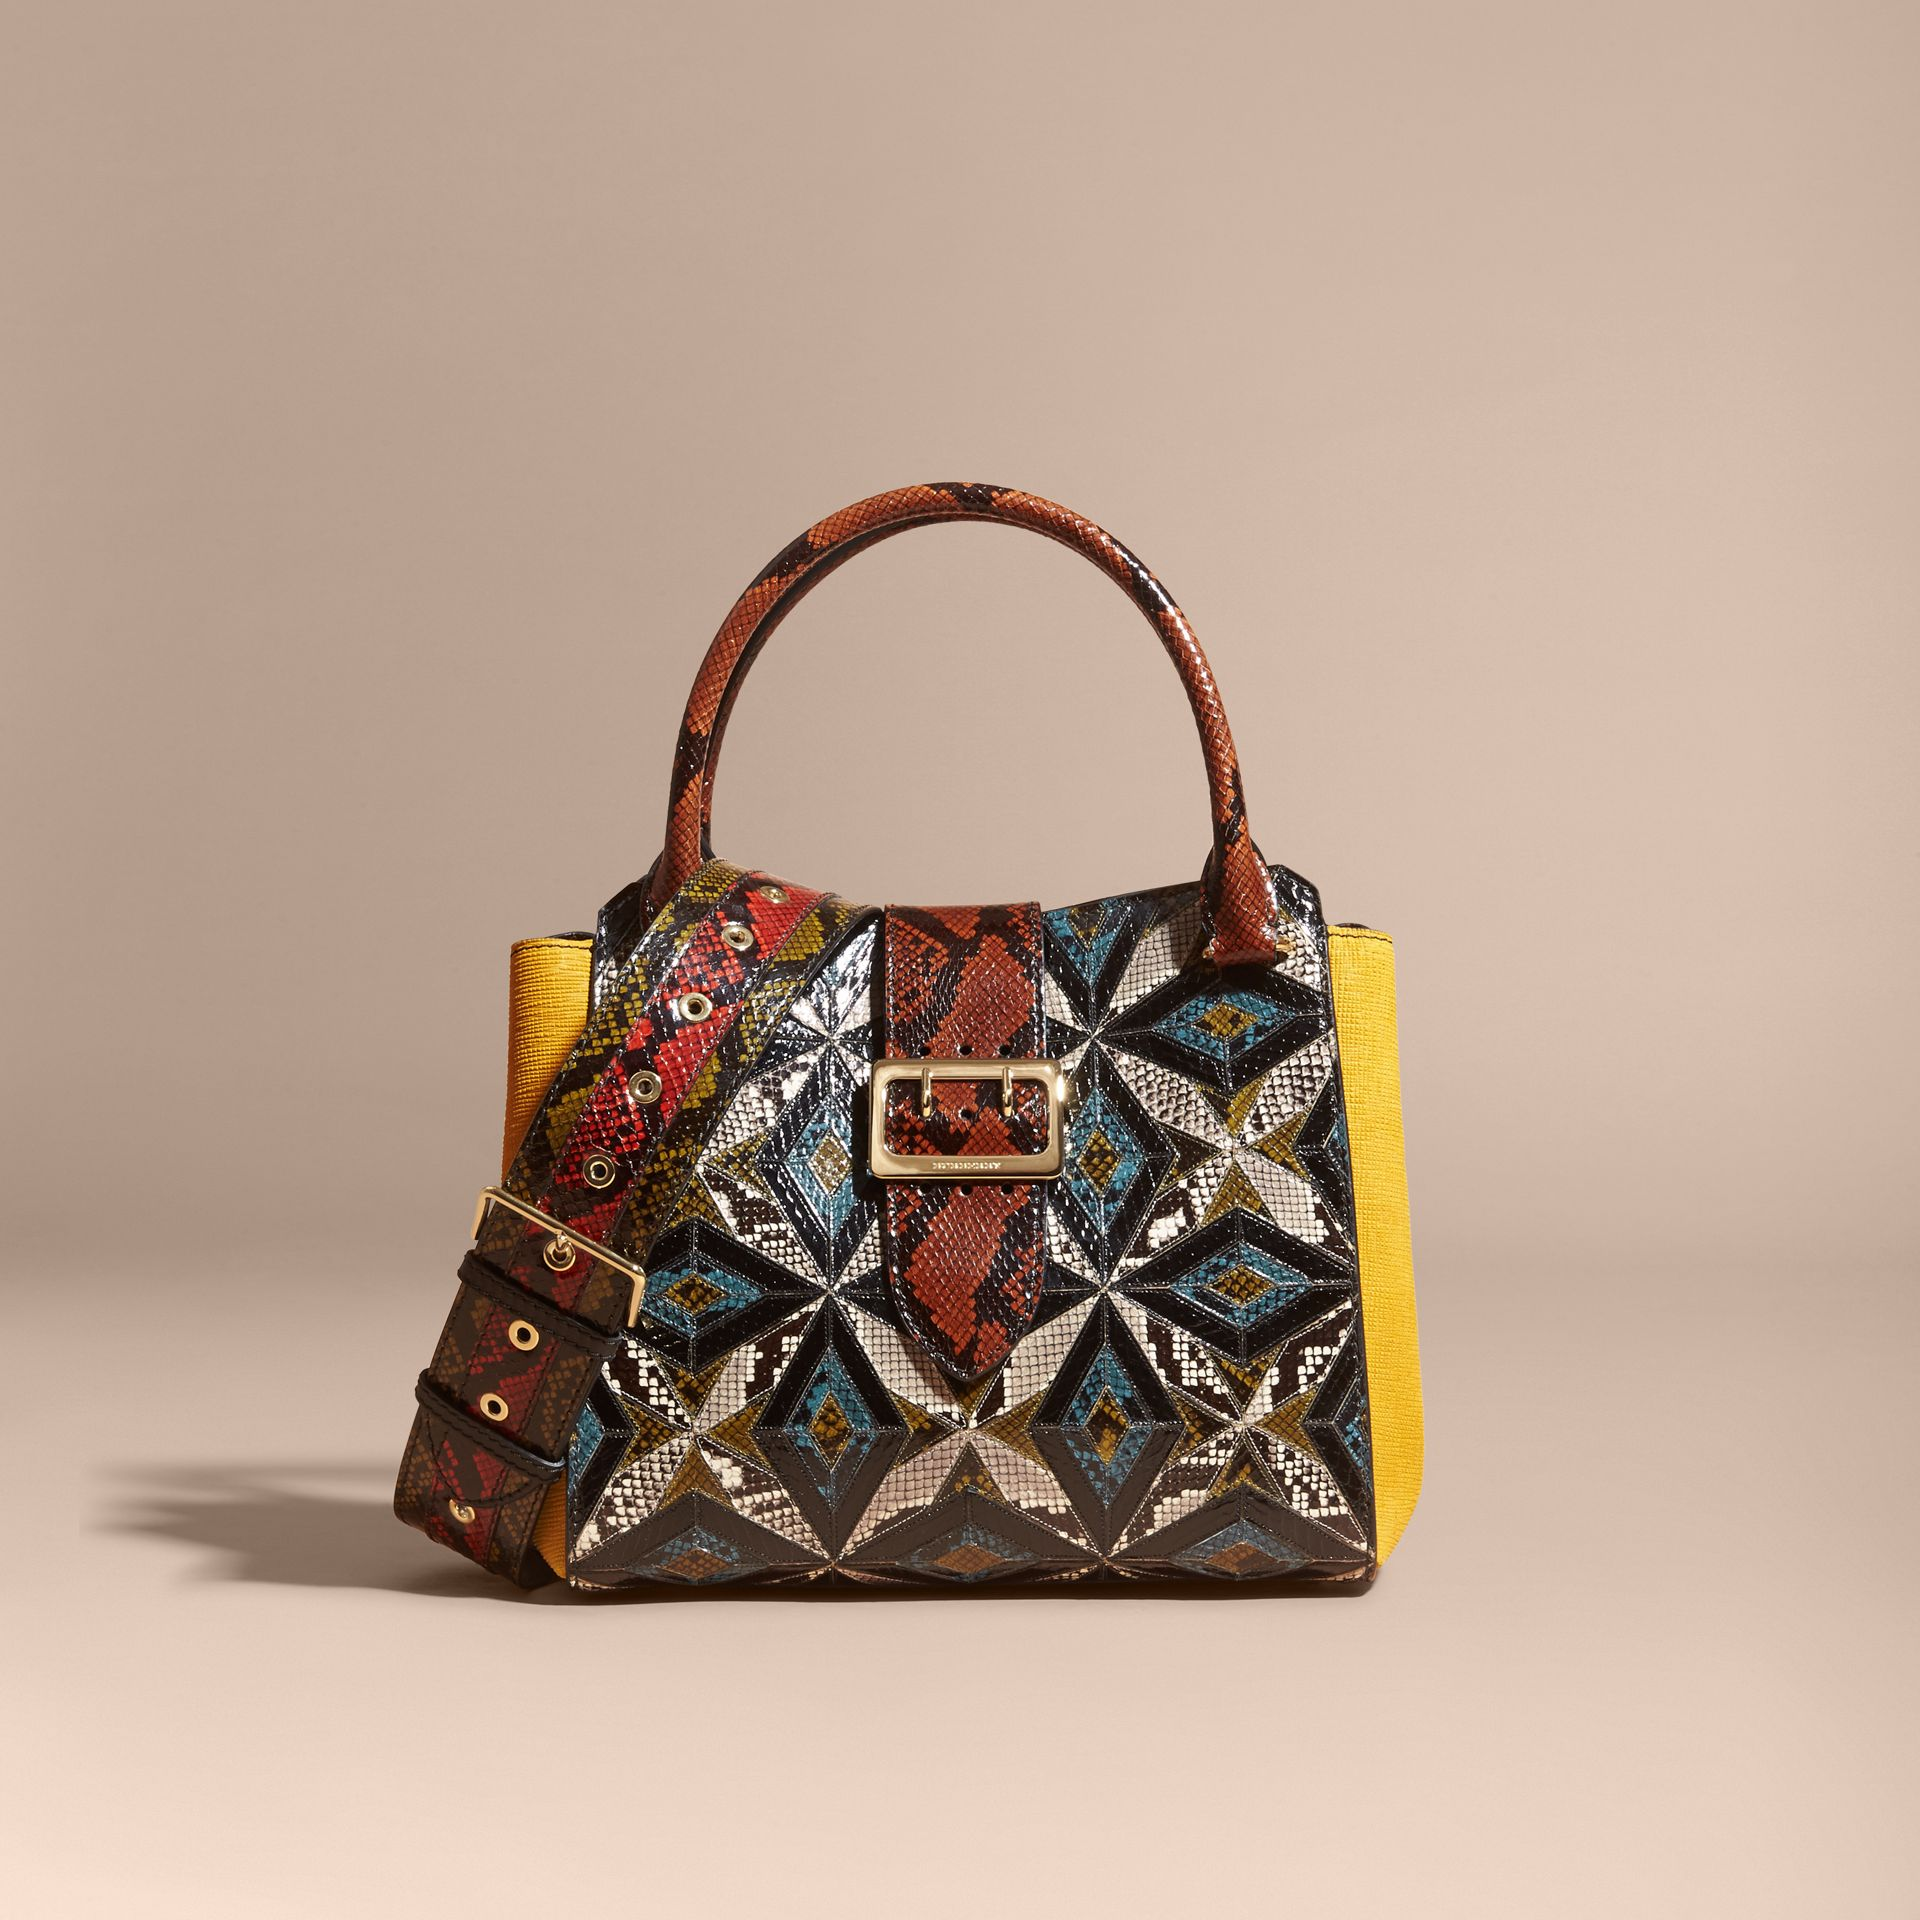 Mineral blue The Medium Buckle Tote in Tiled Snakeskin Mineral Blue - gallery image 9